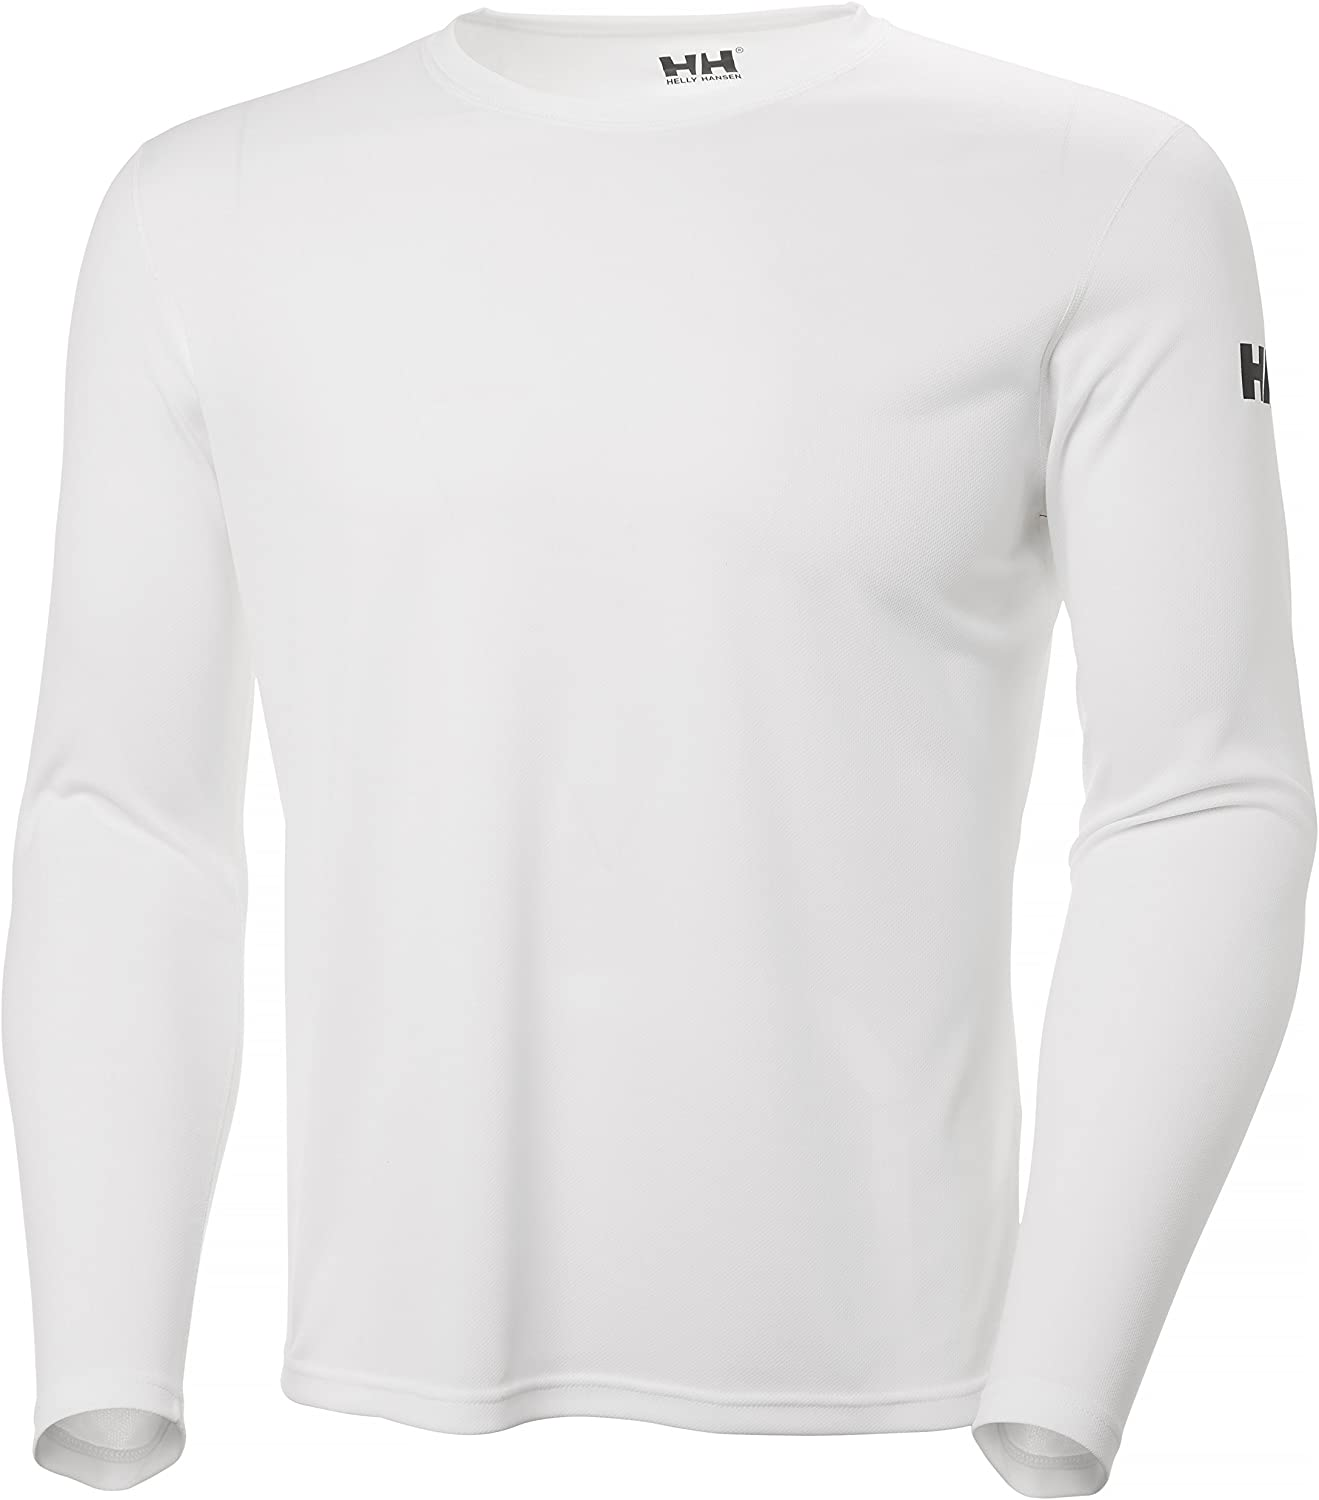 Helly Hansen Crew Base Layer HH Tech, Azul